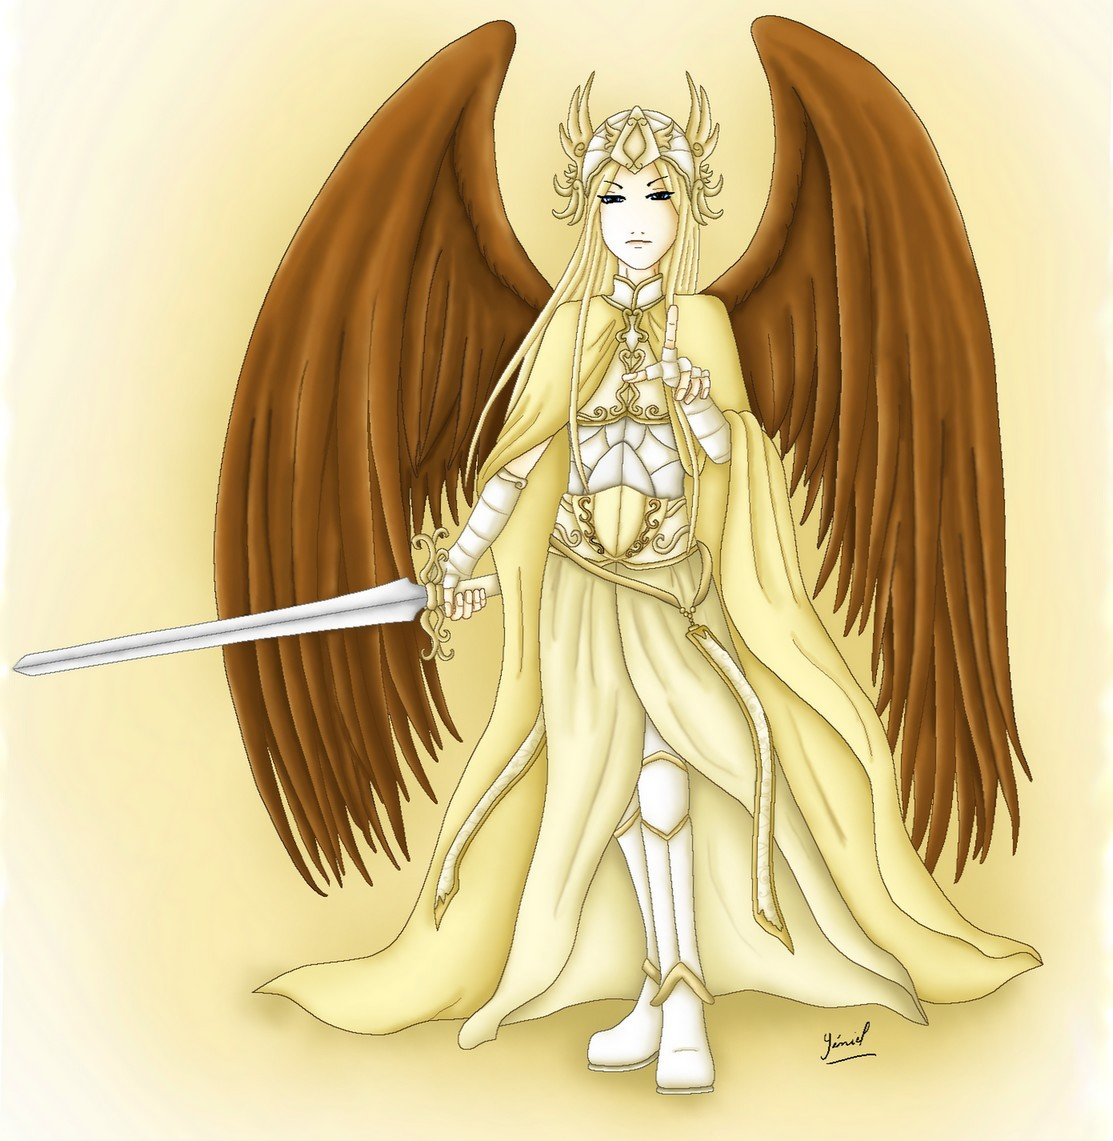 Archangel St Michael by Yeniel on DeviantArt